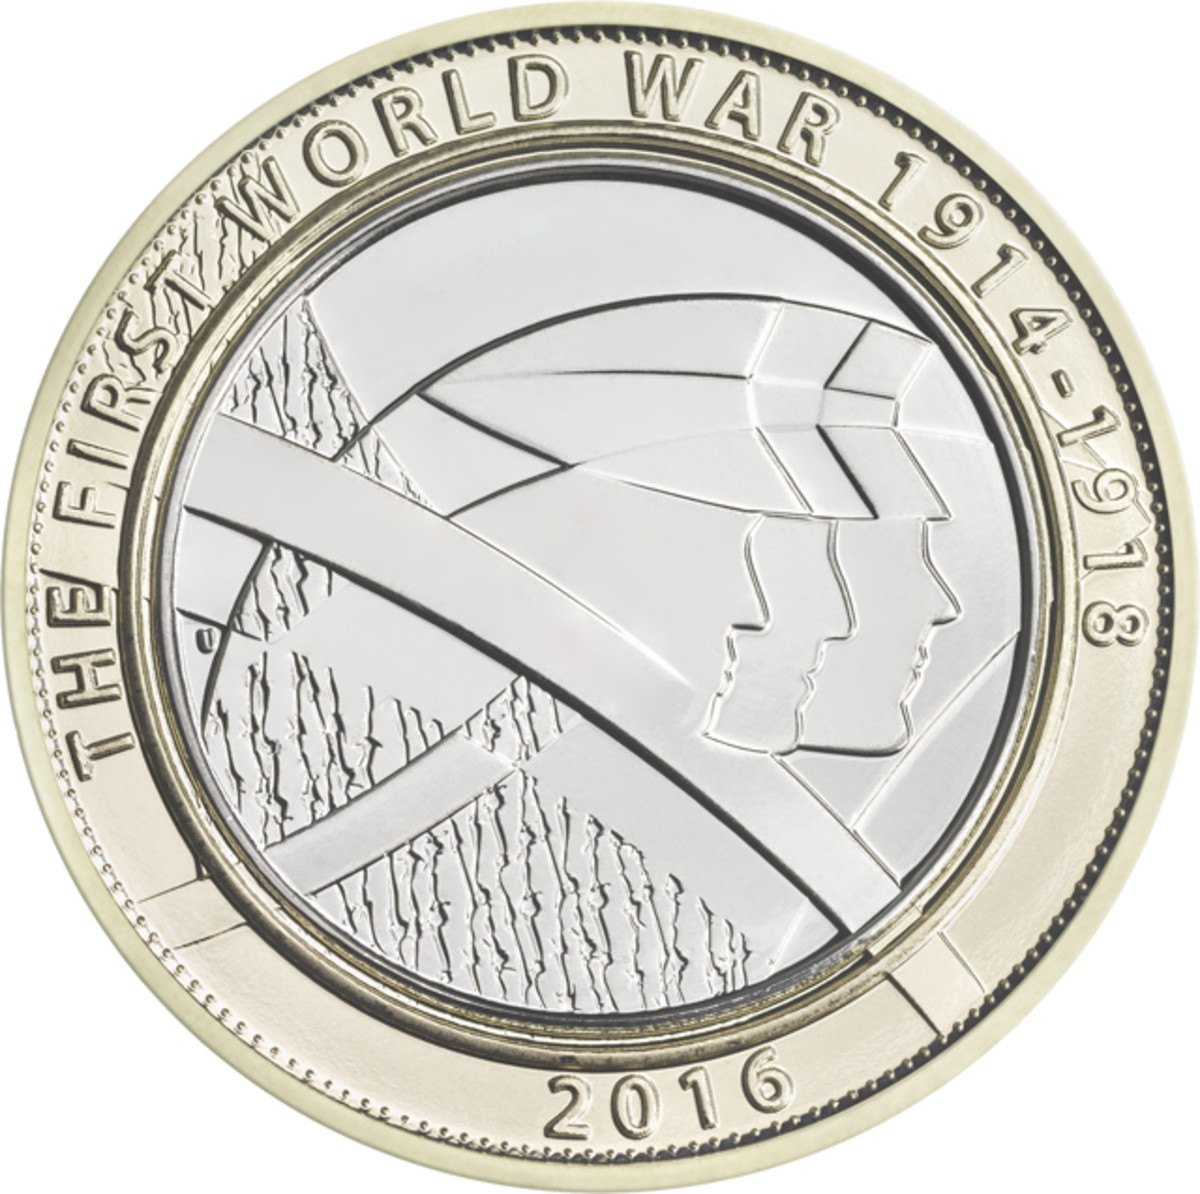 """The role of """"Pals"""" Battalions in defense of King and Country in WWI is recalled on this £2 coin by designer Tim Sharp."""